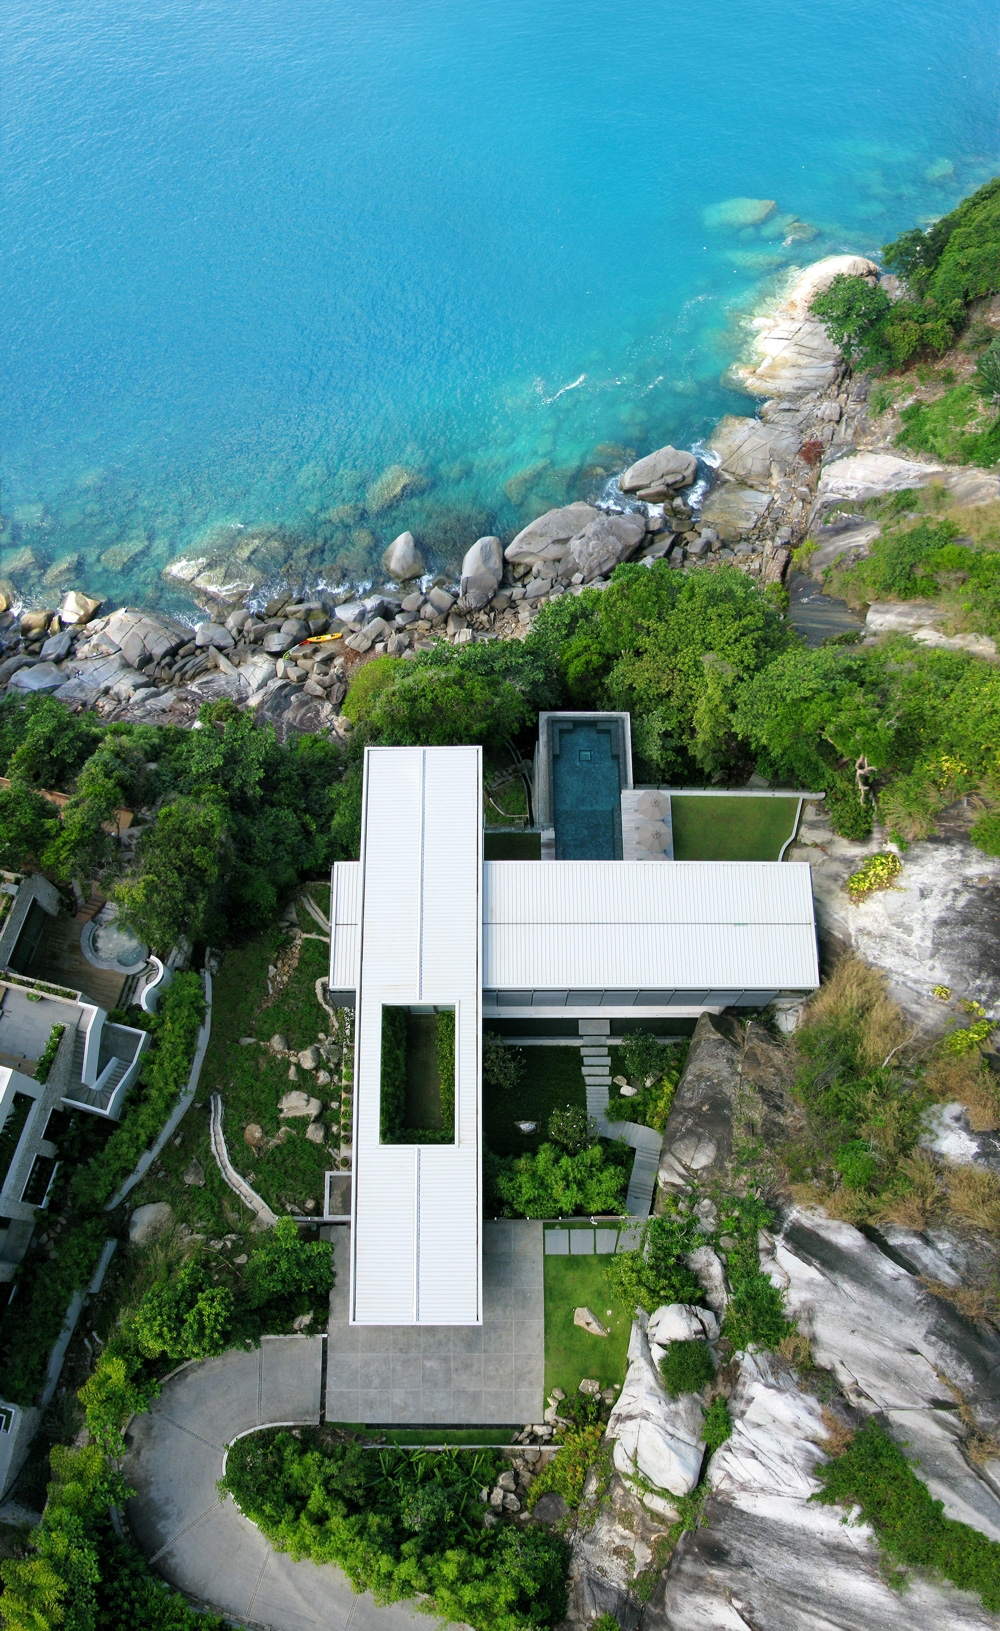 House On The Rocks Villa Amanzi Phuket Thailand